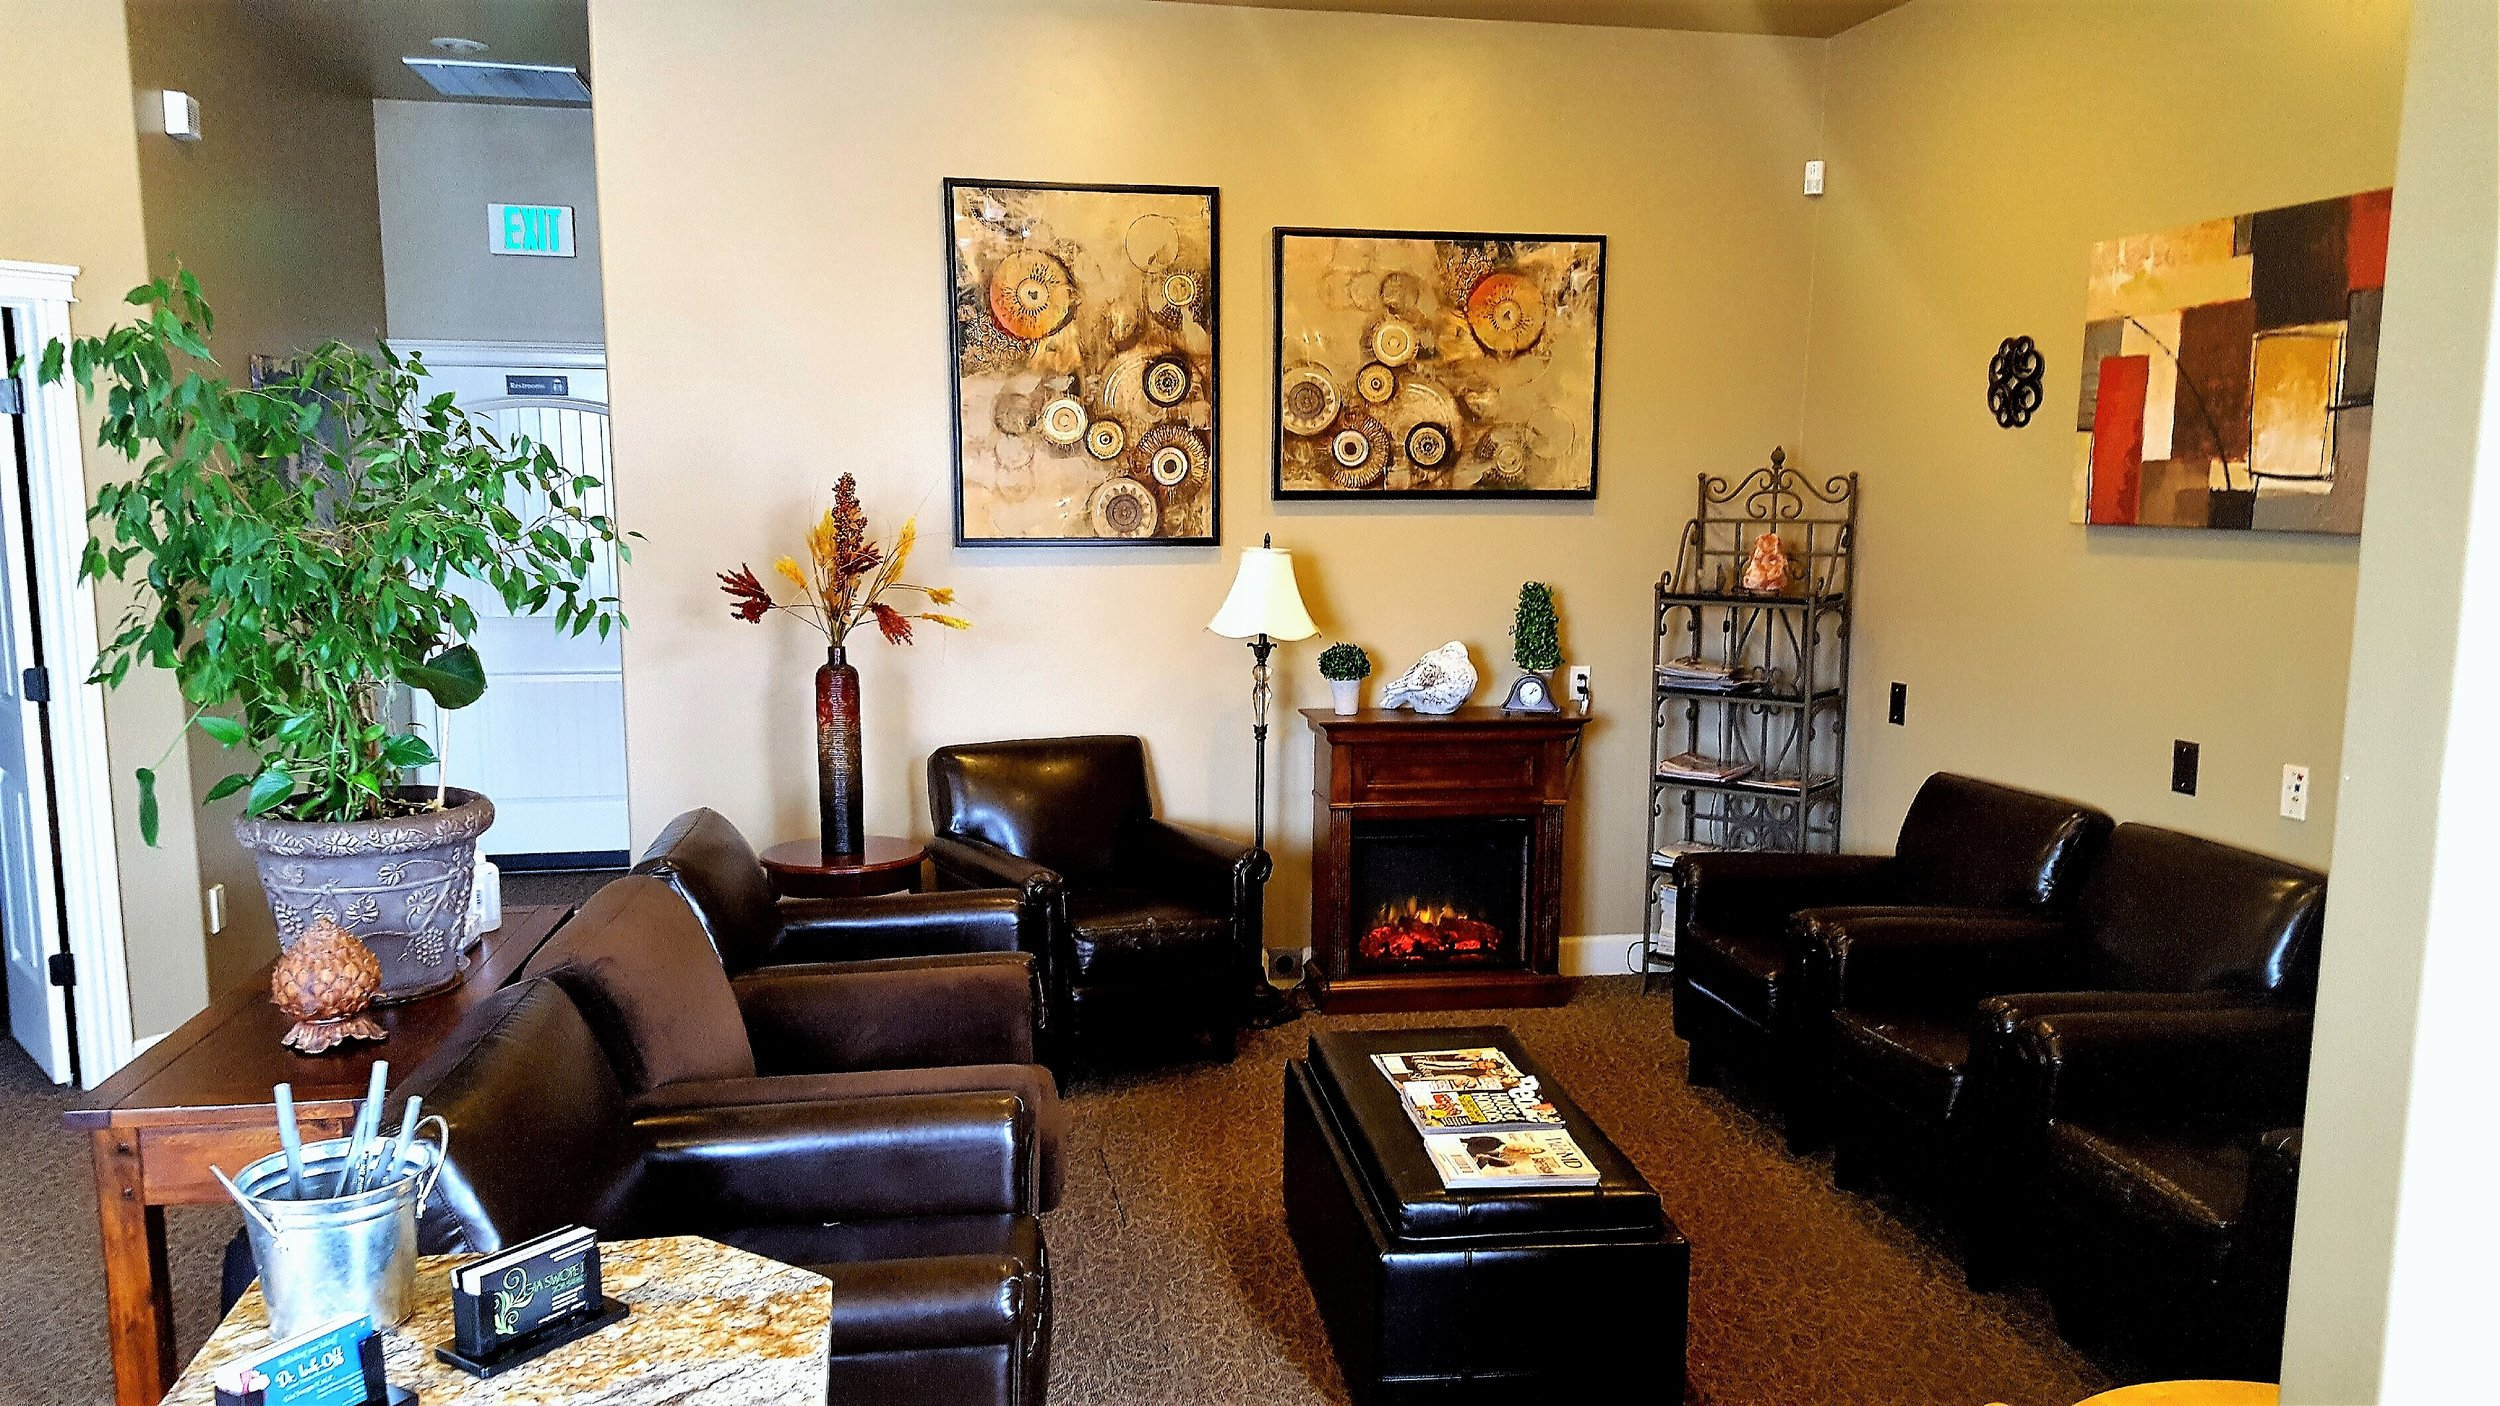 comfortable - We have tried to create an atmosphere where our clients can feel comfortable while waiting for their treatments, we have lots of magazines, music, and even a fireplace to keep you cozy during your wait. This isn't your regular trip to the doctors office, no white walls and florescent lights here!